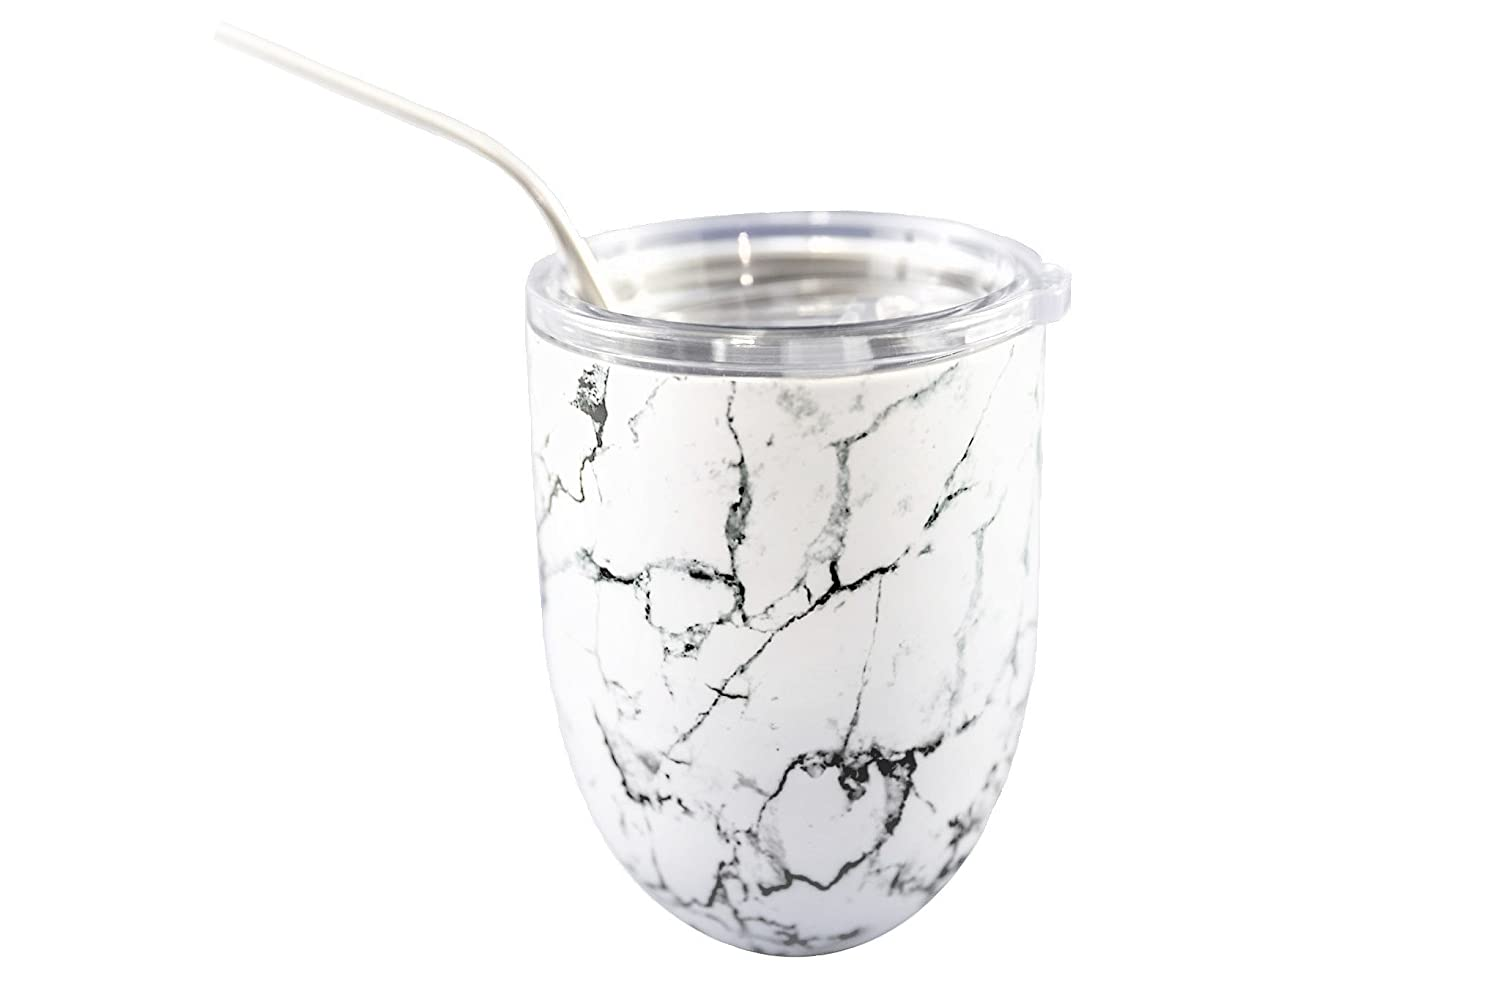 Stainless Steel Stemless Wine Glass Tumbler by Blissful Co Spill-proof slide lock Lid and Stainless Steel Straw White Marble 12 Ounce Double Walled Insulated